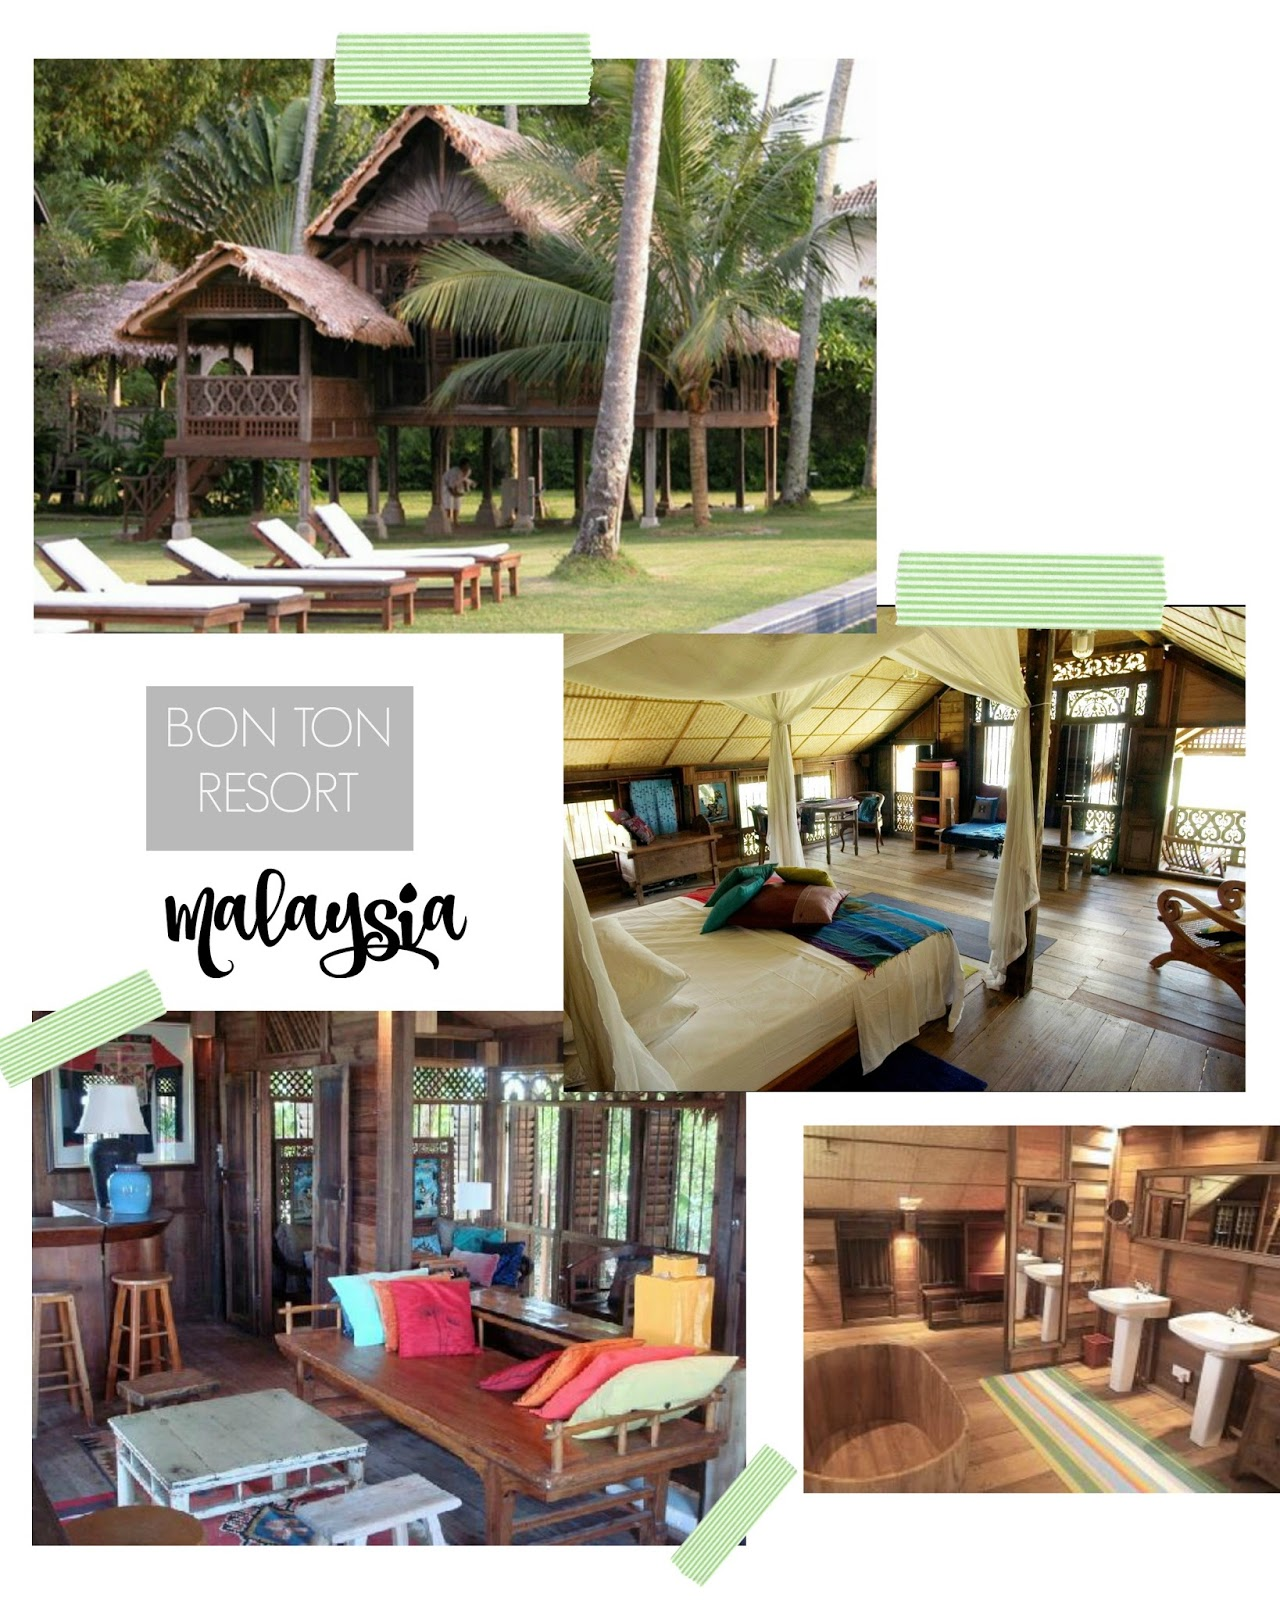 mamasVIB | V. I. BUYS: Looking East for rustic style inspired by Bon Ton Resort in Malaysia {Staycation Style #6}